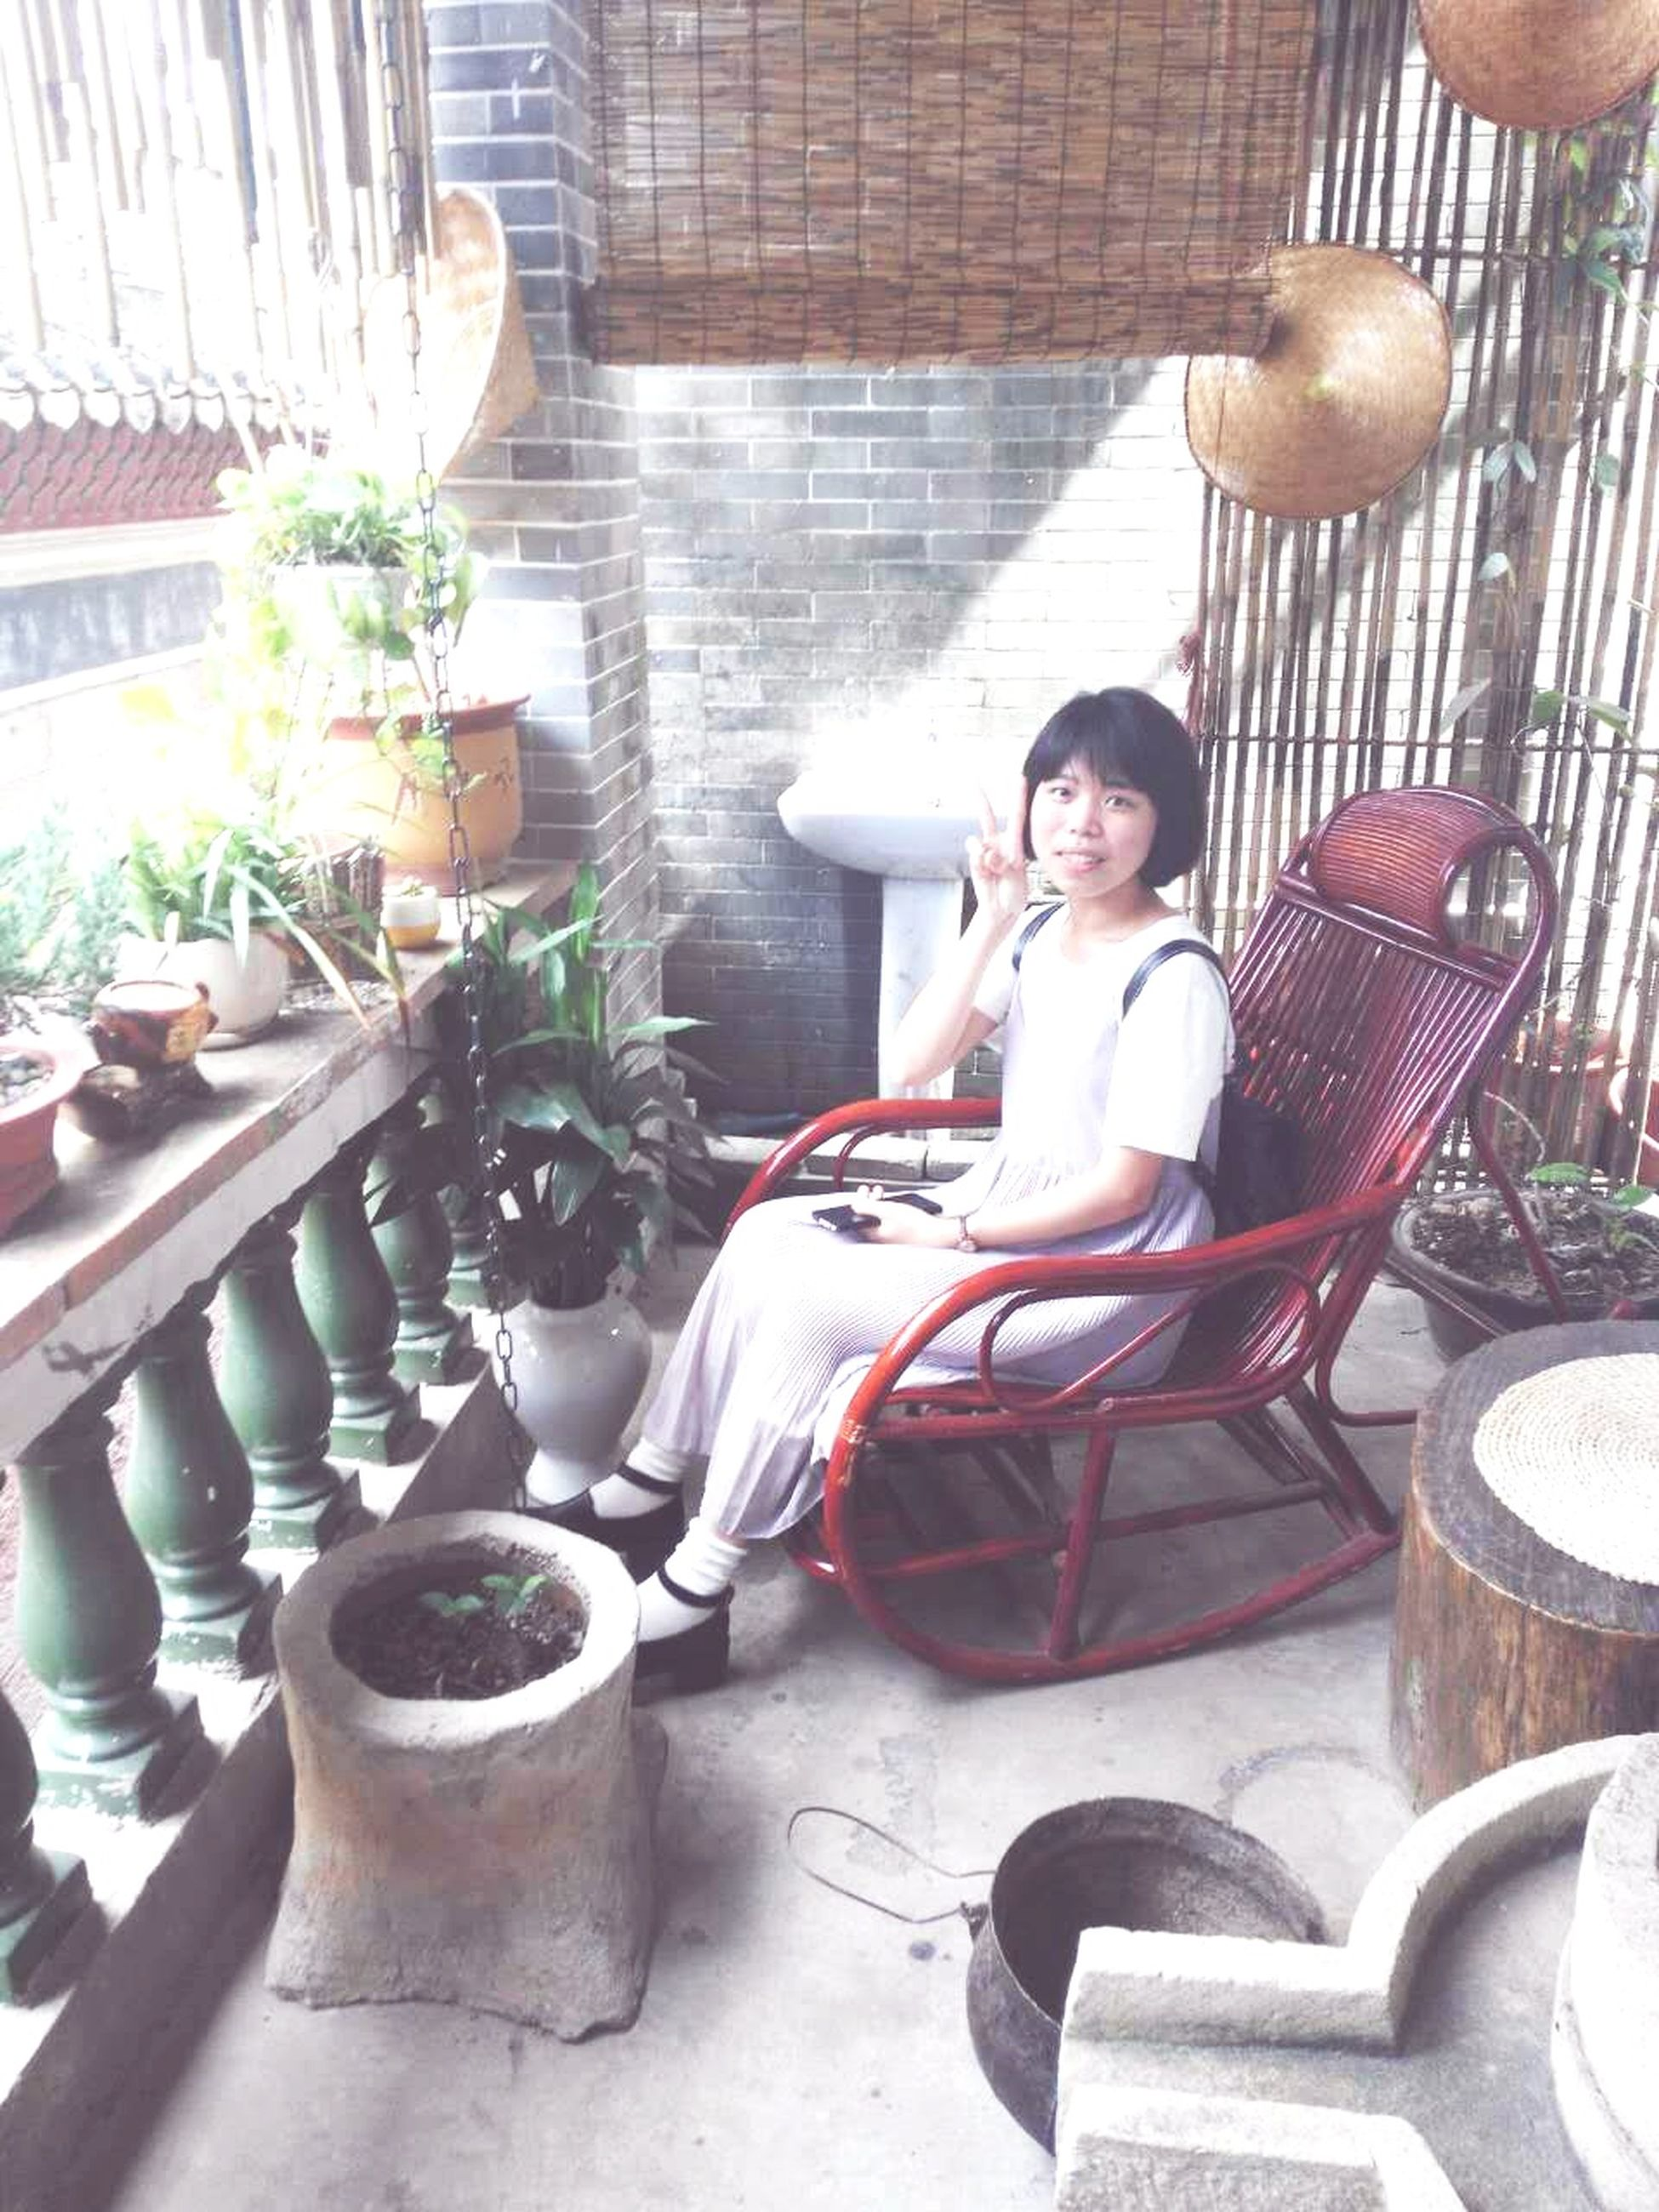 sitting, indoors, lifestyles, chair, casual clothing, table, person, leisure activity, sunglasses, food and drink, drink, young adult, potted plant, standing, day, front view, high angle view, relaxation